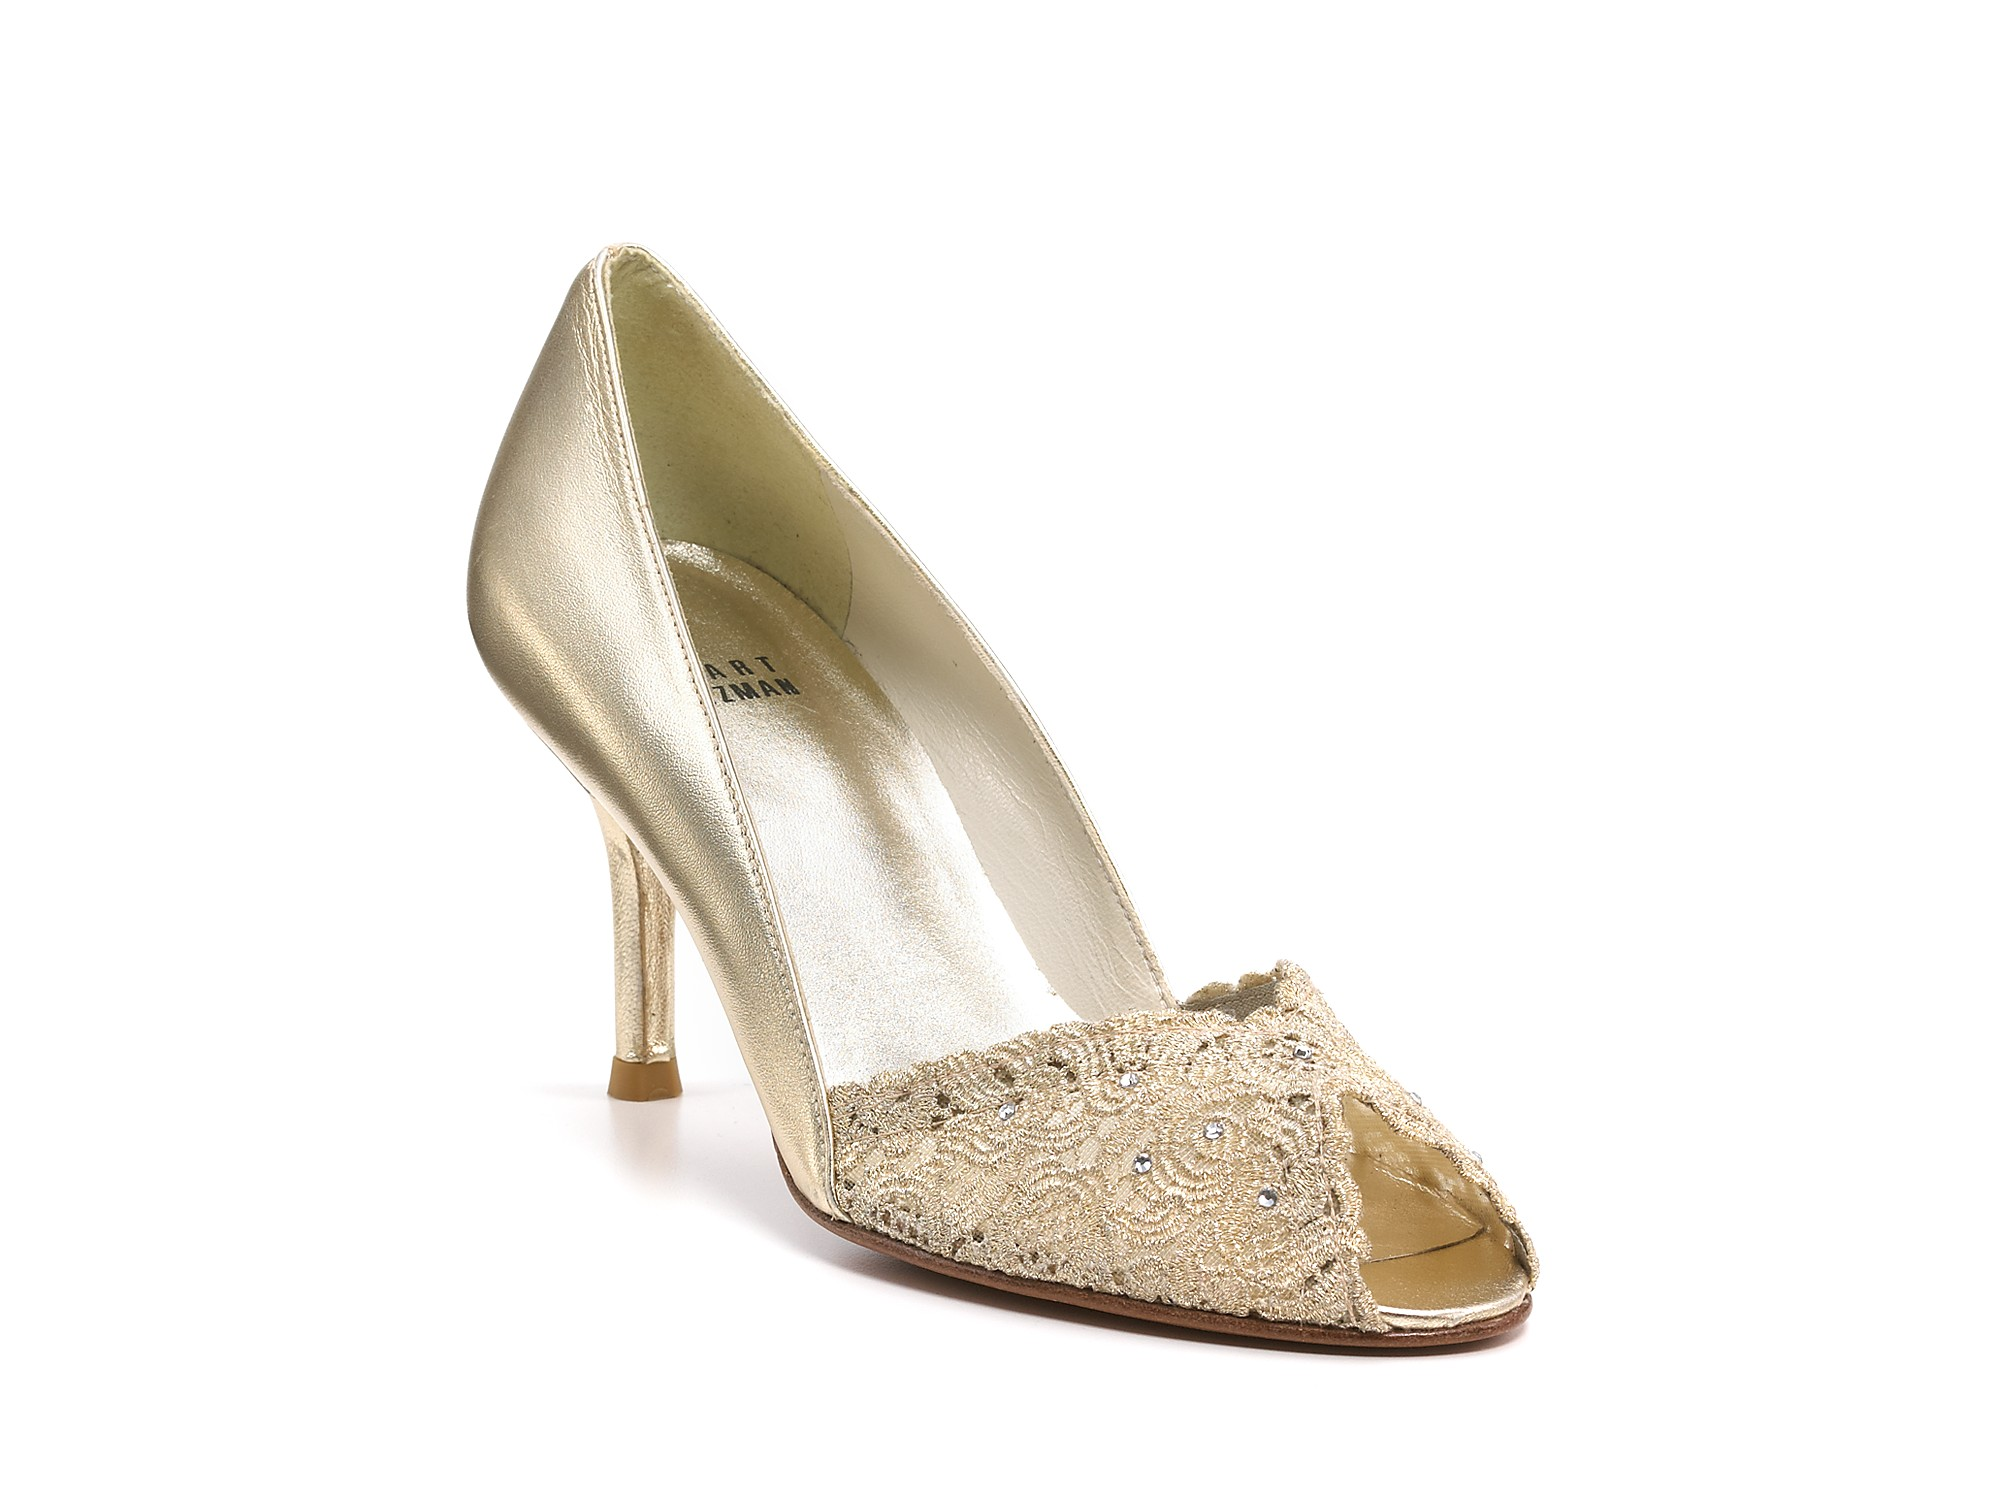 100% original big discount cheap price STUART WEITZMAN Laced shoes free shipping big sale clearance official sale best 2mU6Ce